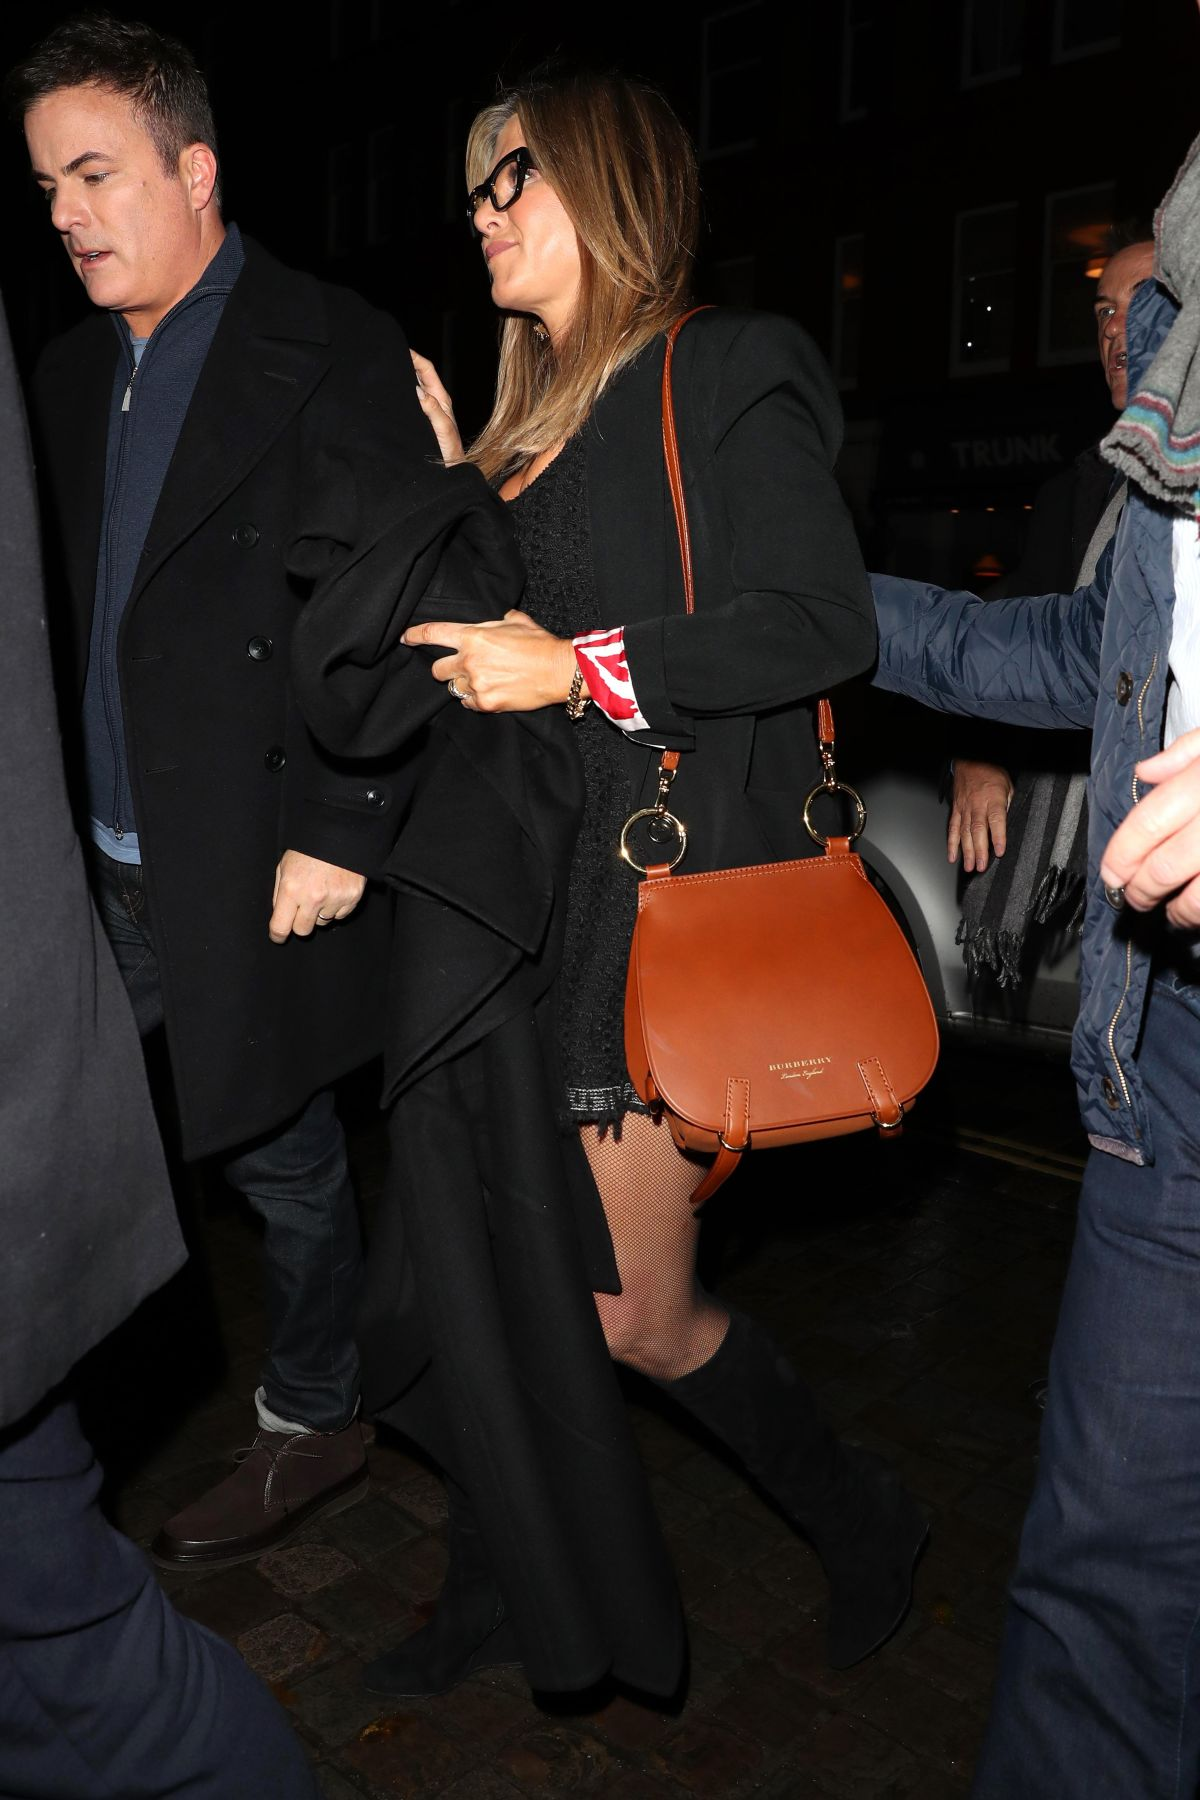 Jennifer Aniston At the Chiltern Firehouse in London   jennifer-aniston-at-the-chiltern-firehouse-in-london_7